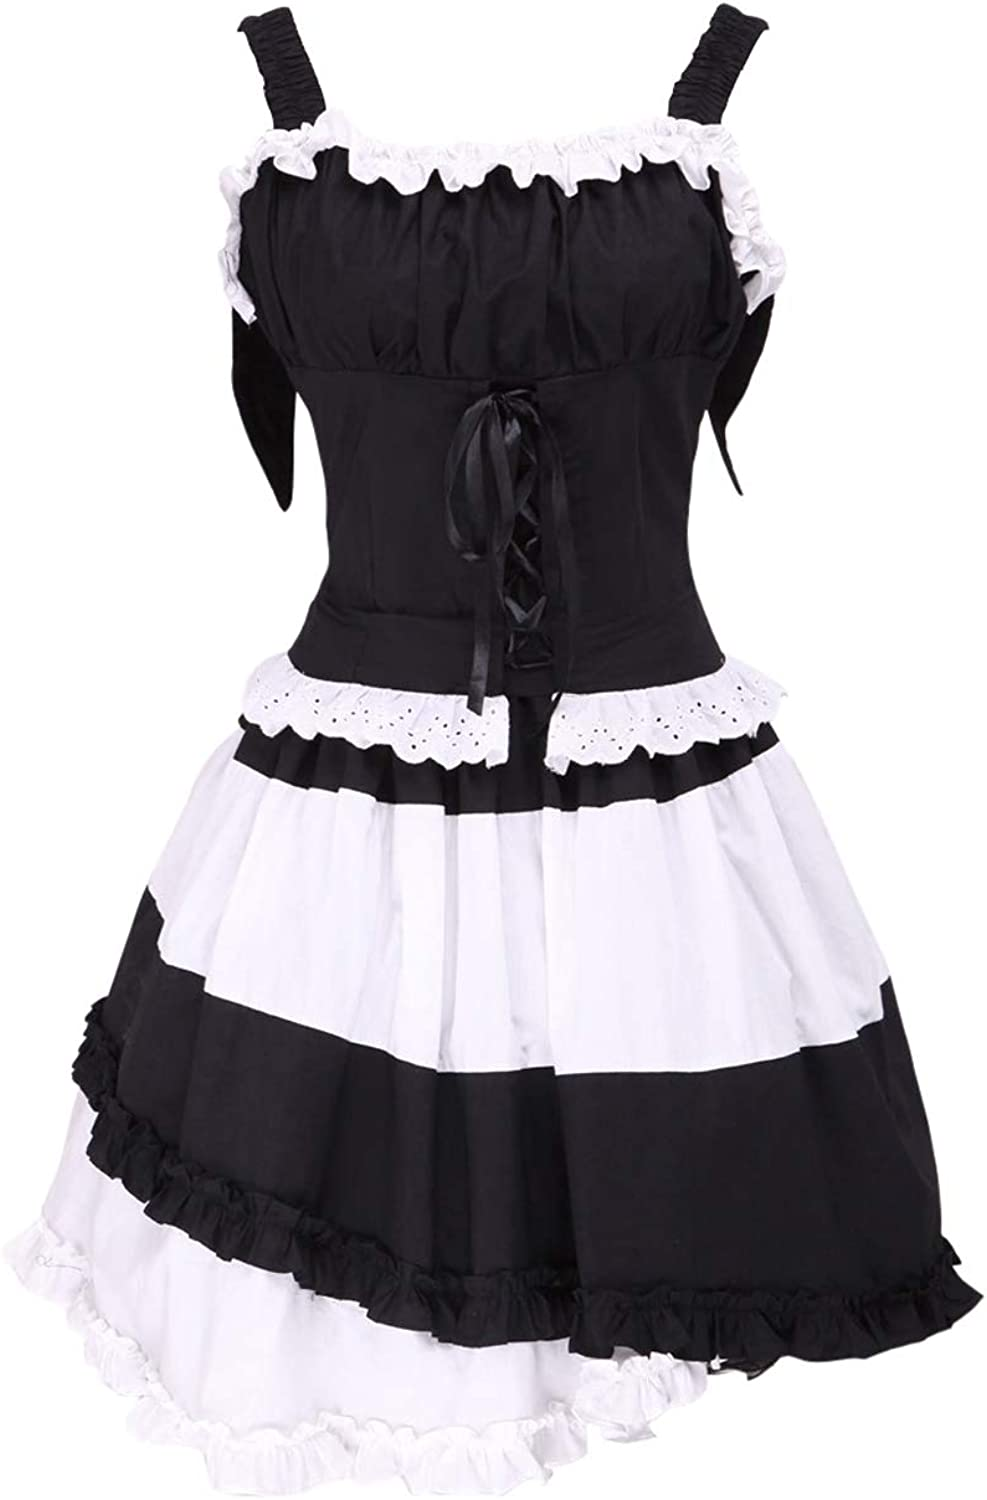 Antaina Black Cotton Ruffle Lace Sweet Gothic Victorian Lolita Cosplay Dress